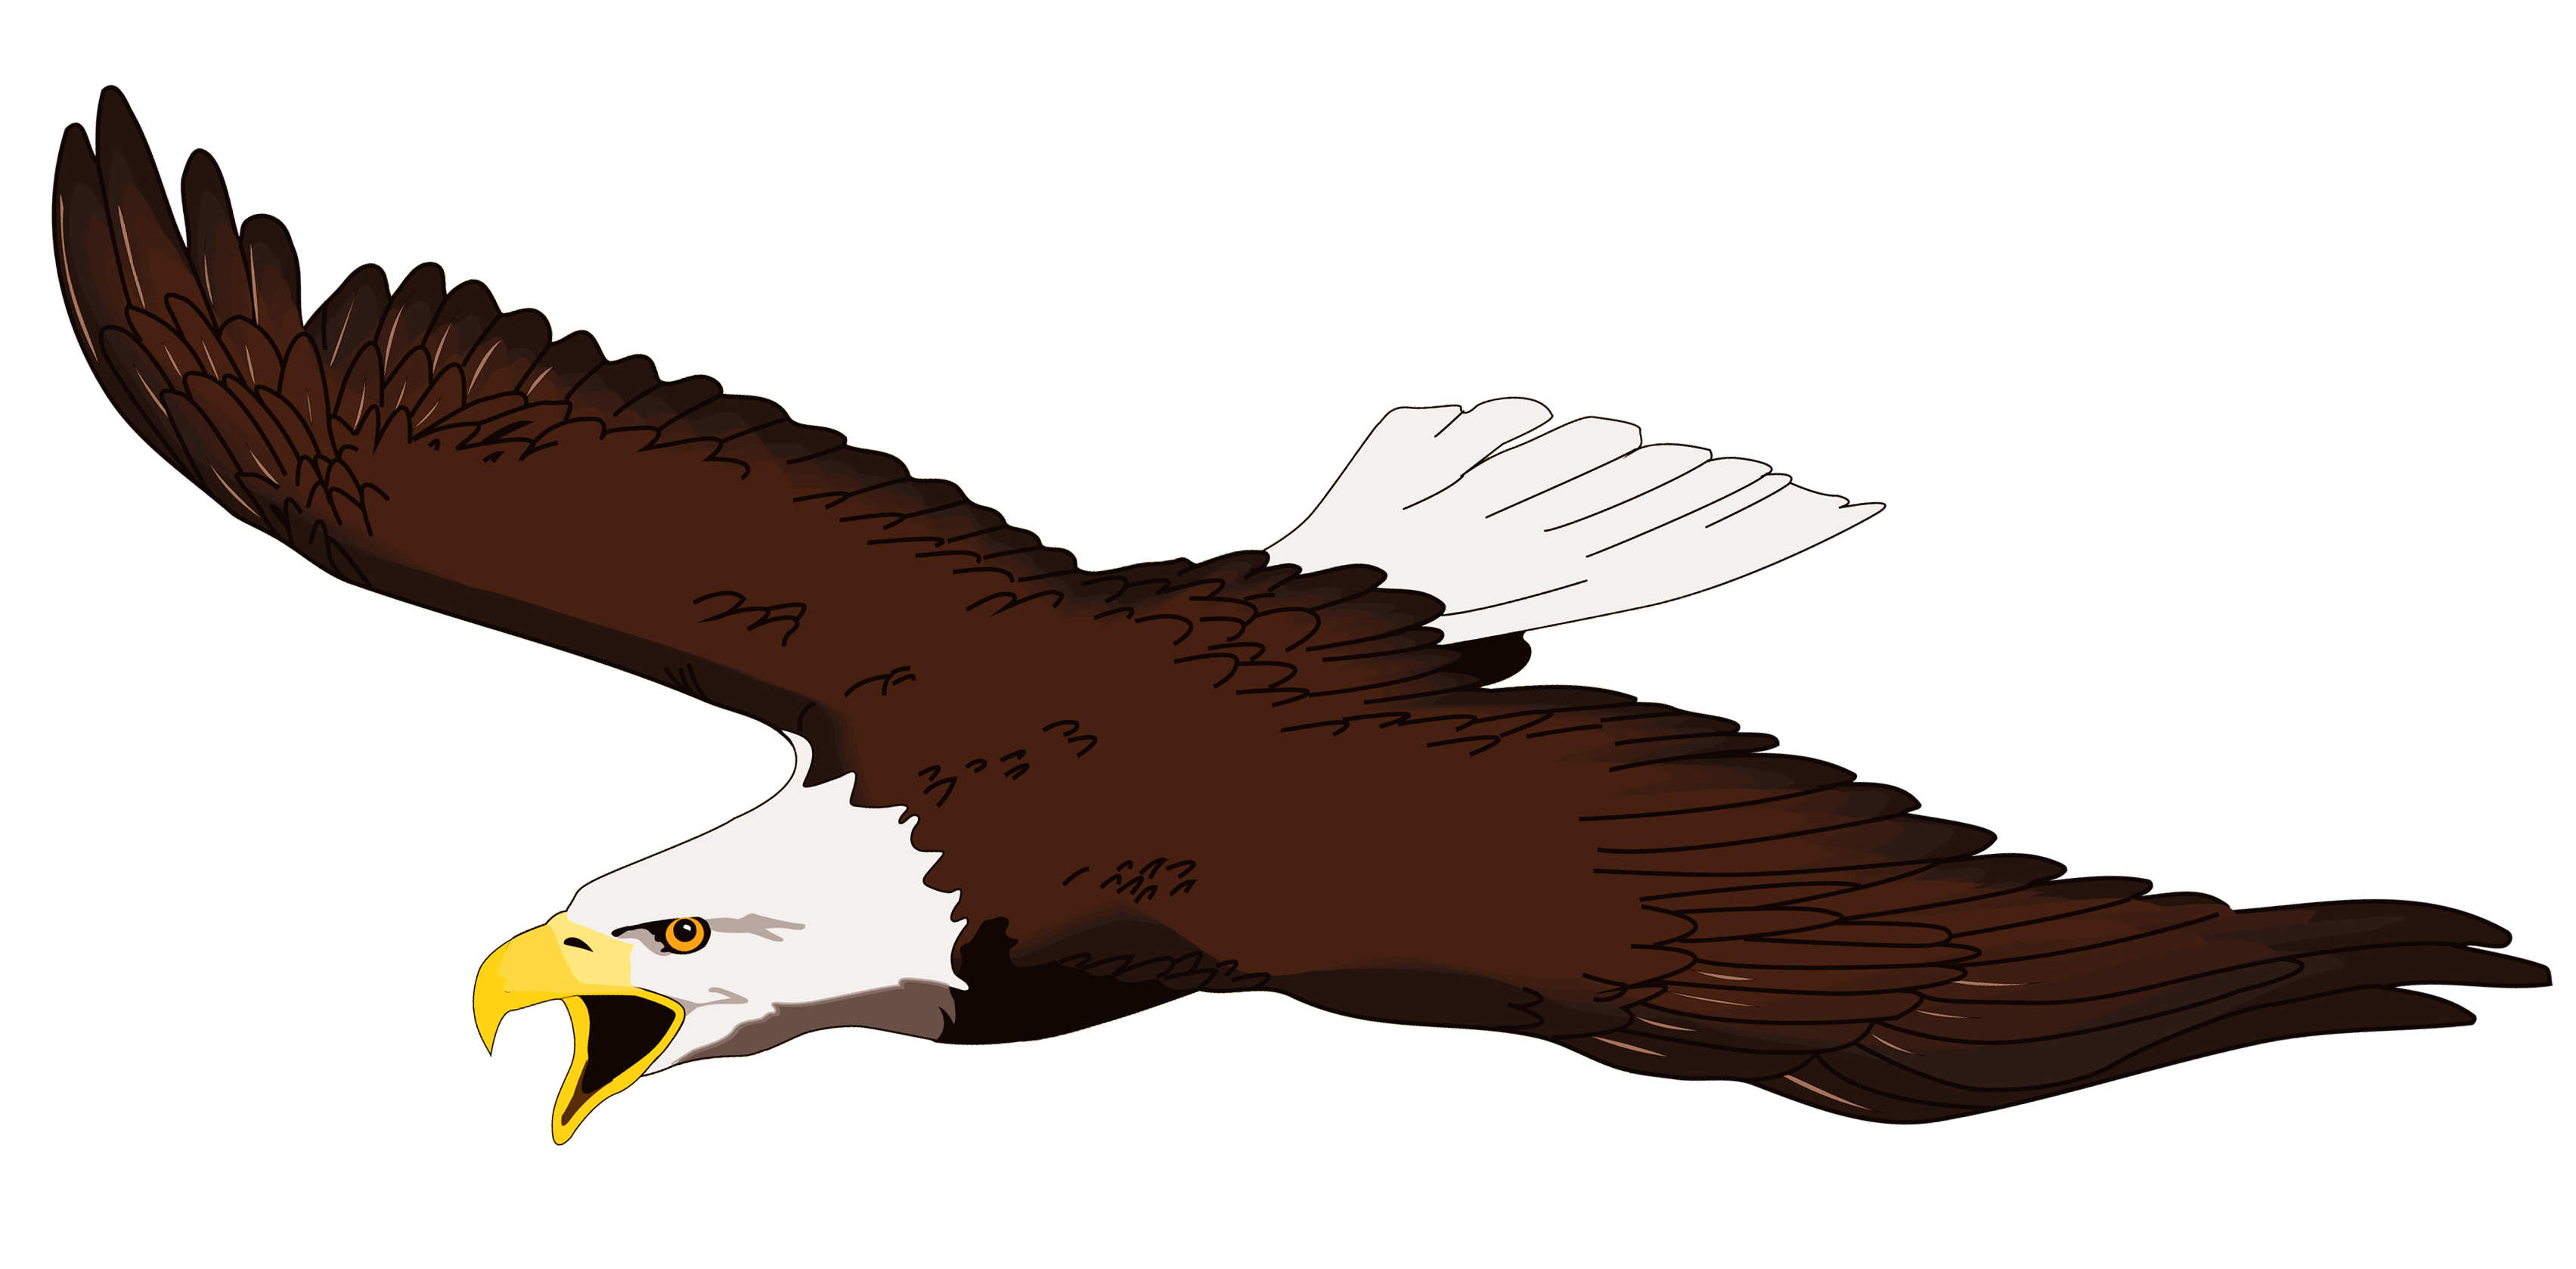 jpg free stock Images for clip art. Soaring clipart.